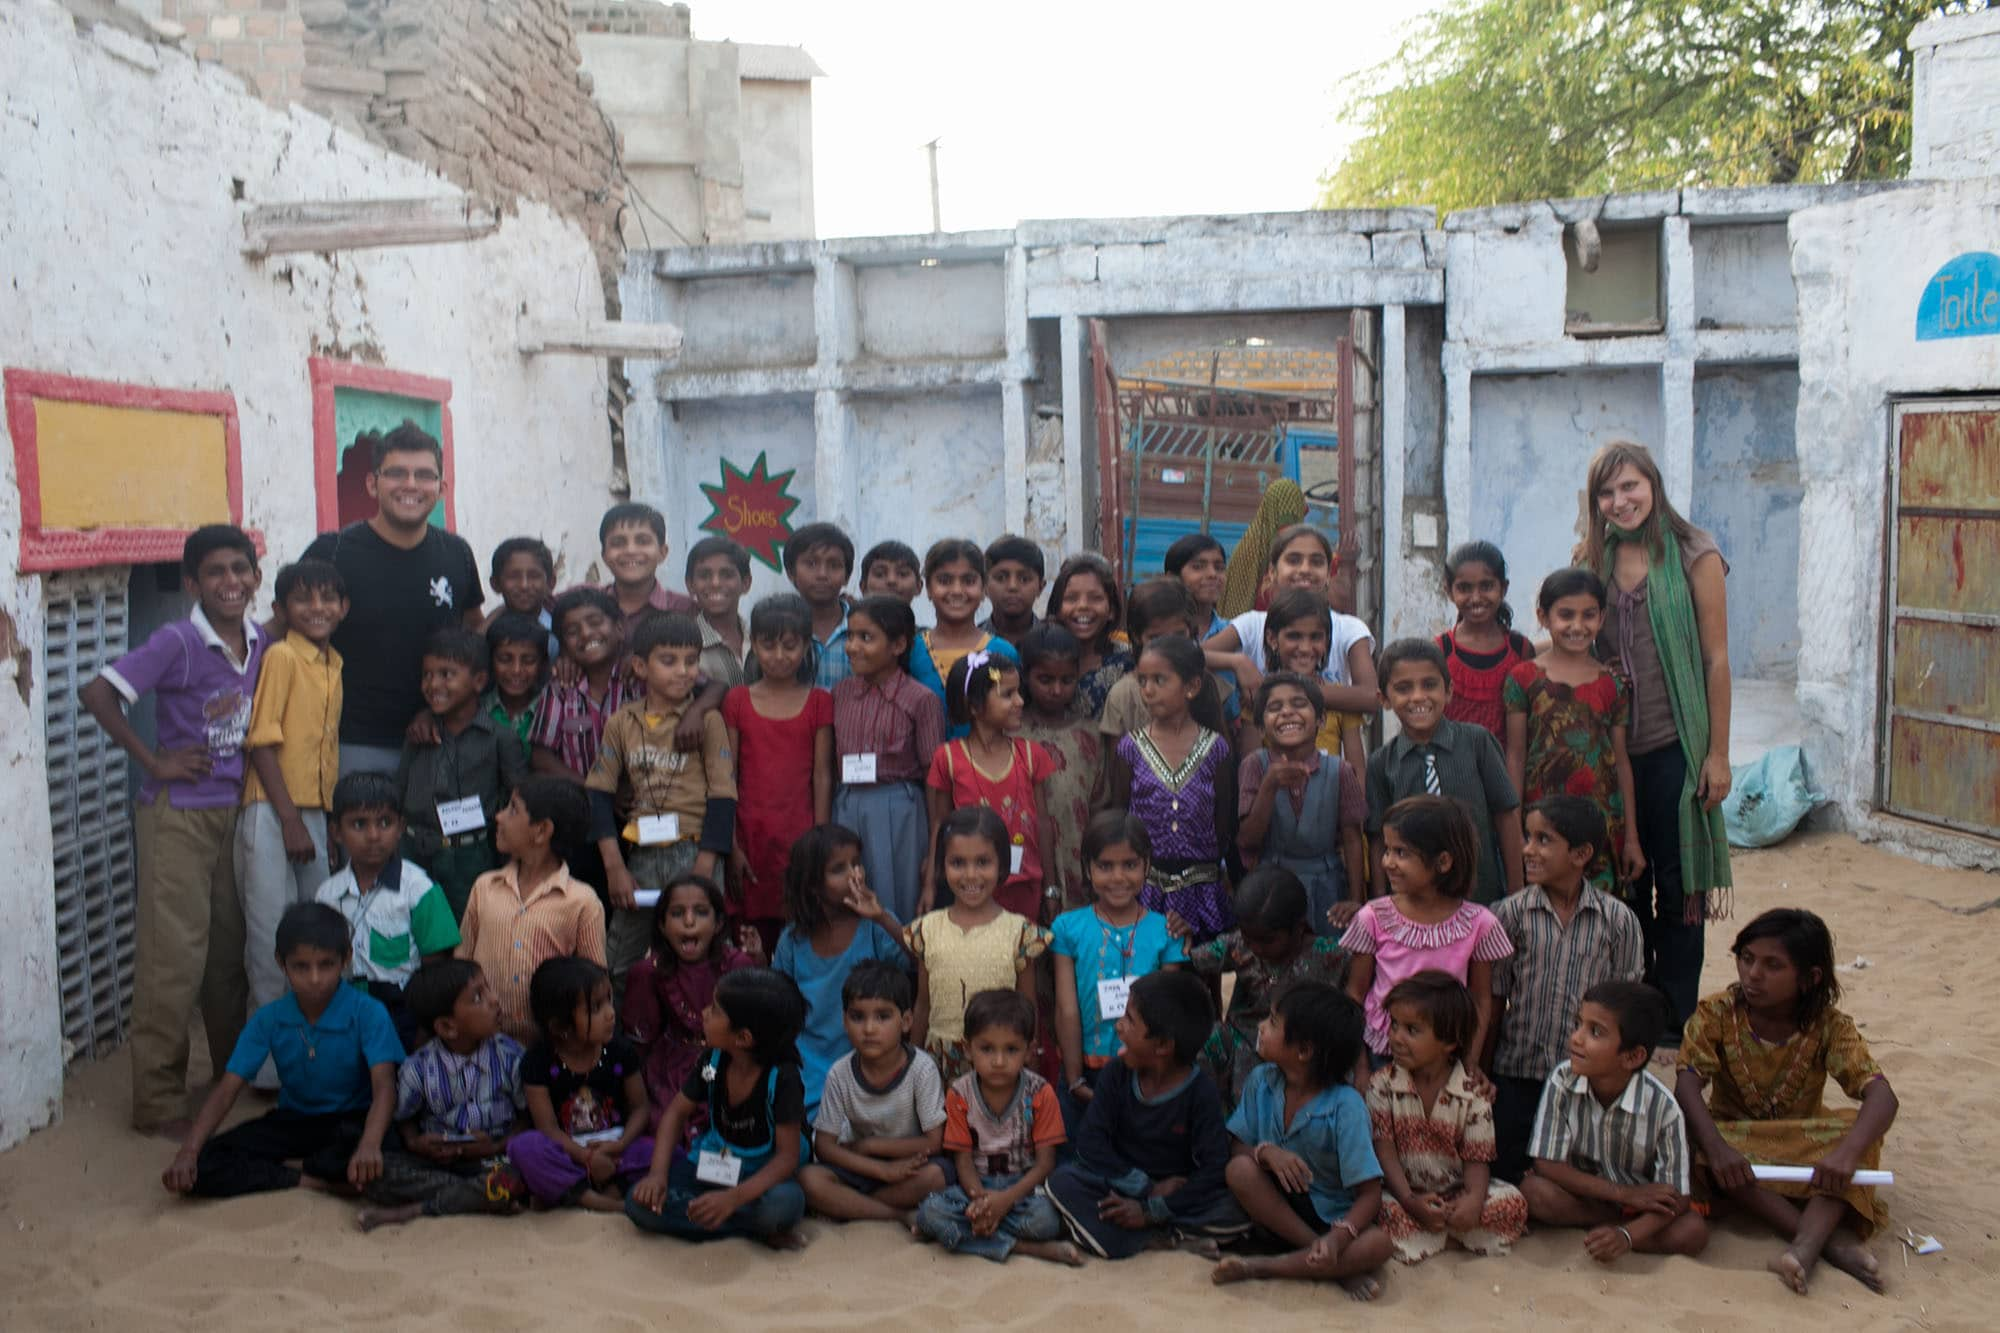 Volunteering at Sambhali Trust in Setrawa, India